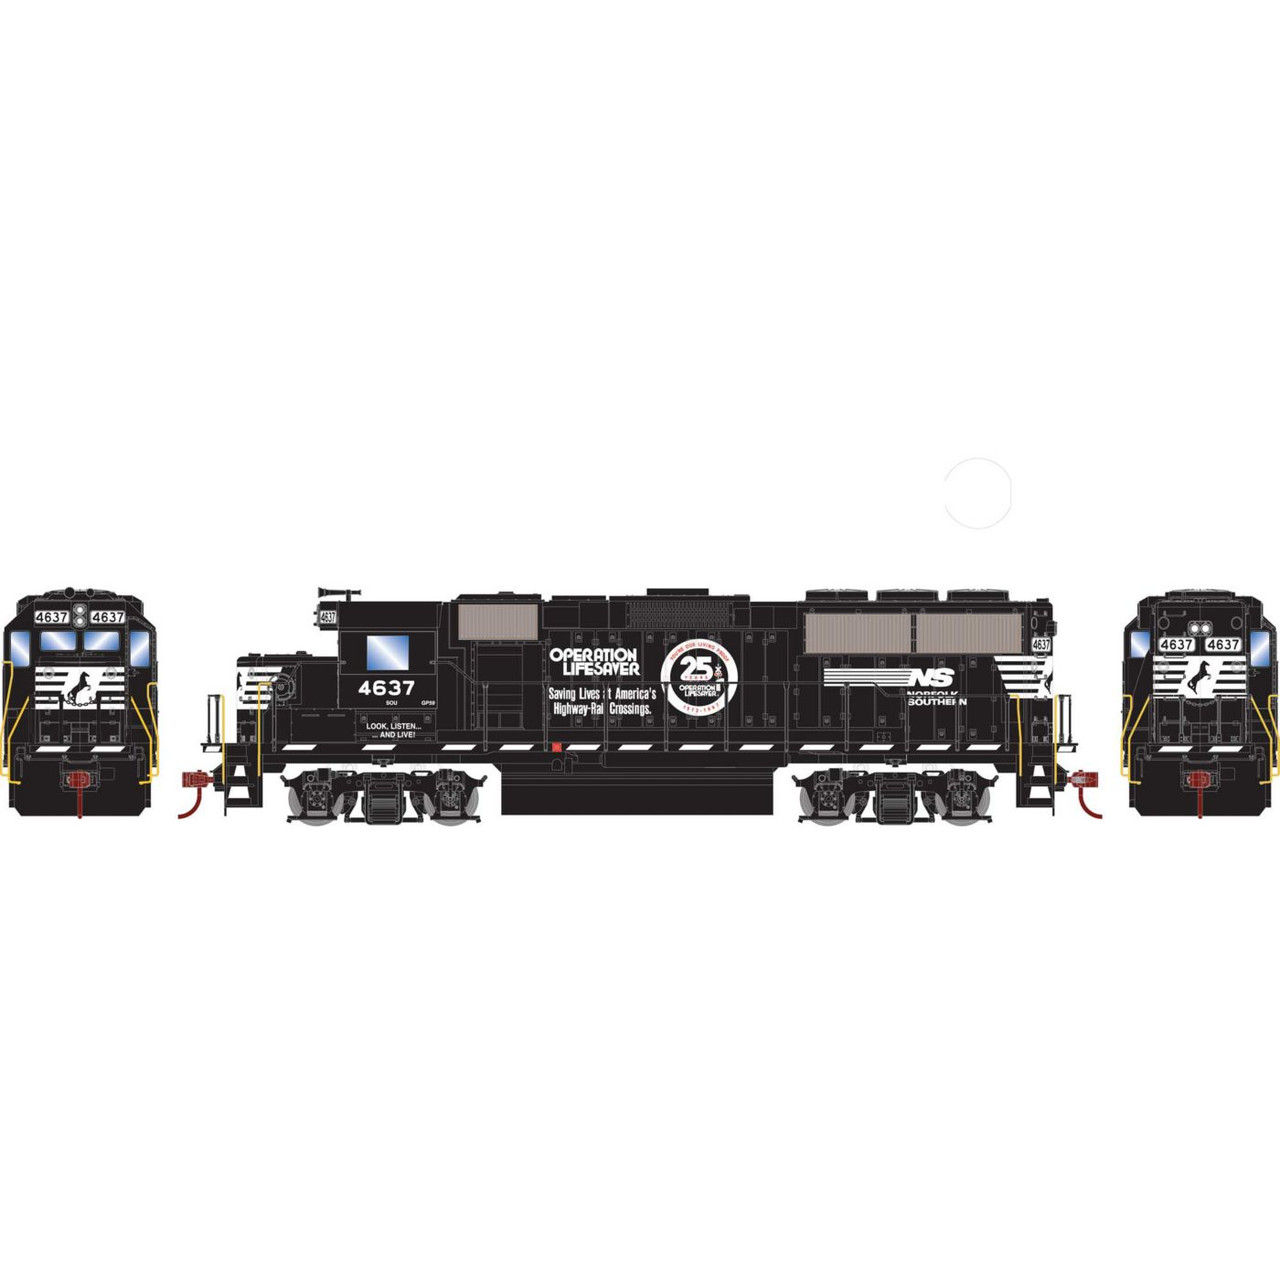 Roundhouse 12654 - HO GP59 w/DCC Decoder, NS/OLS #4637